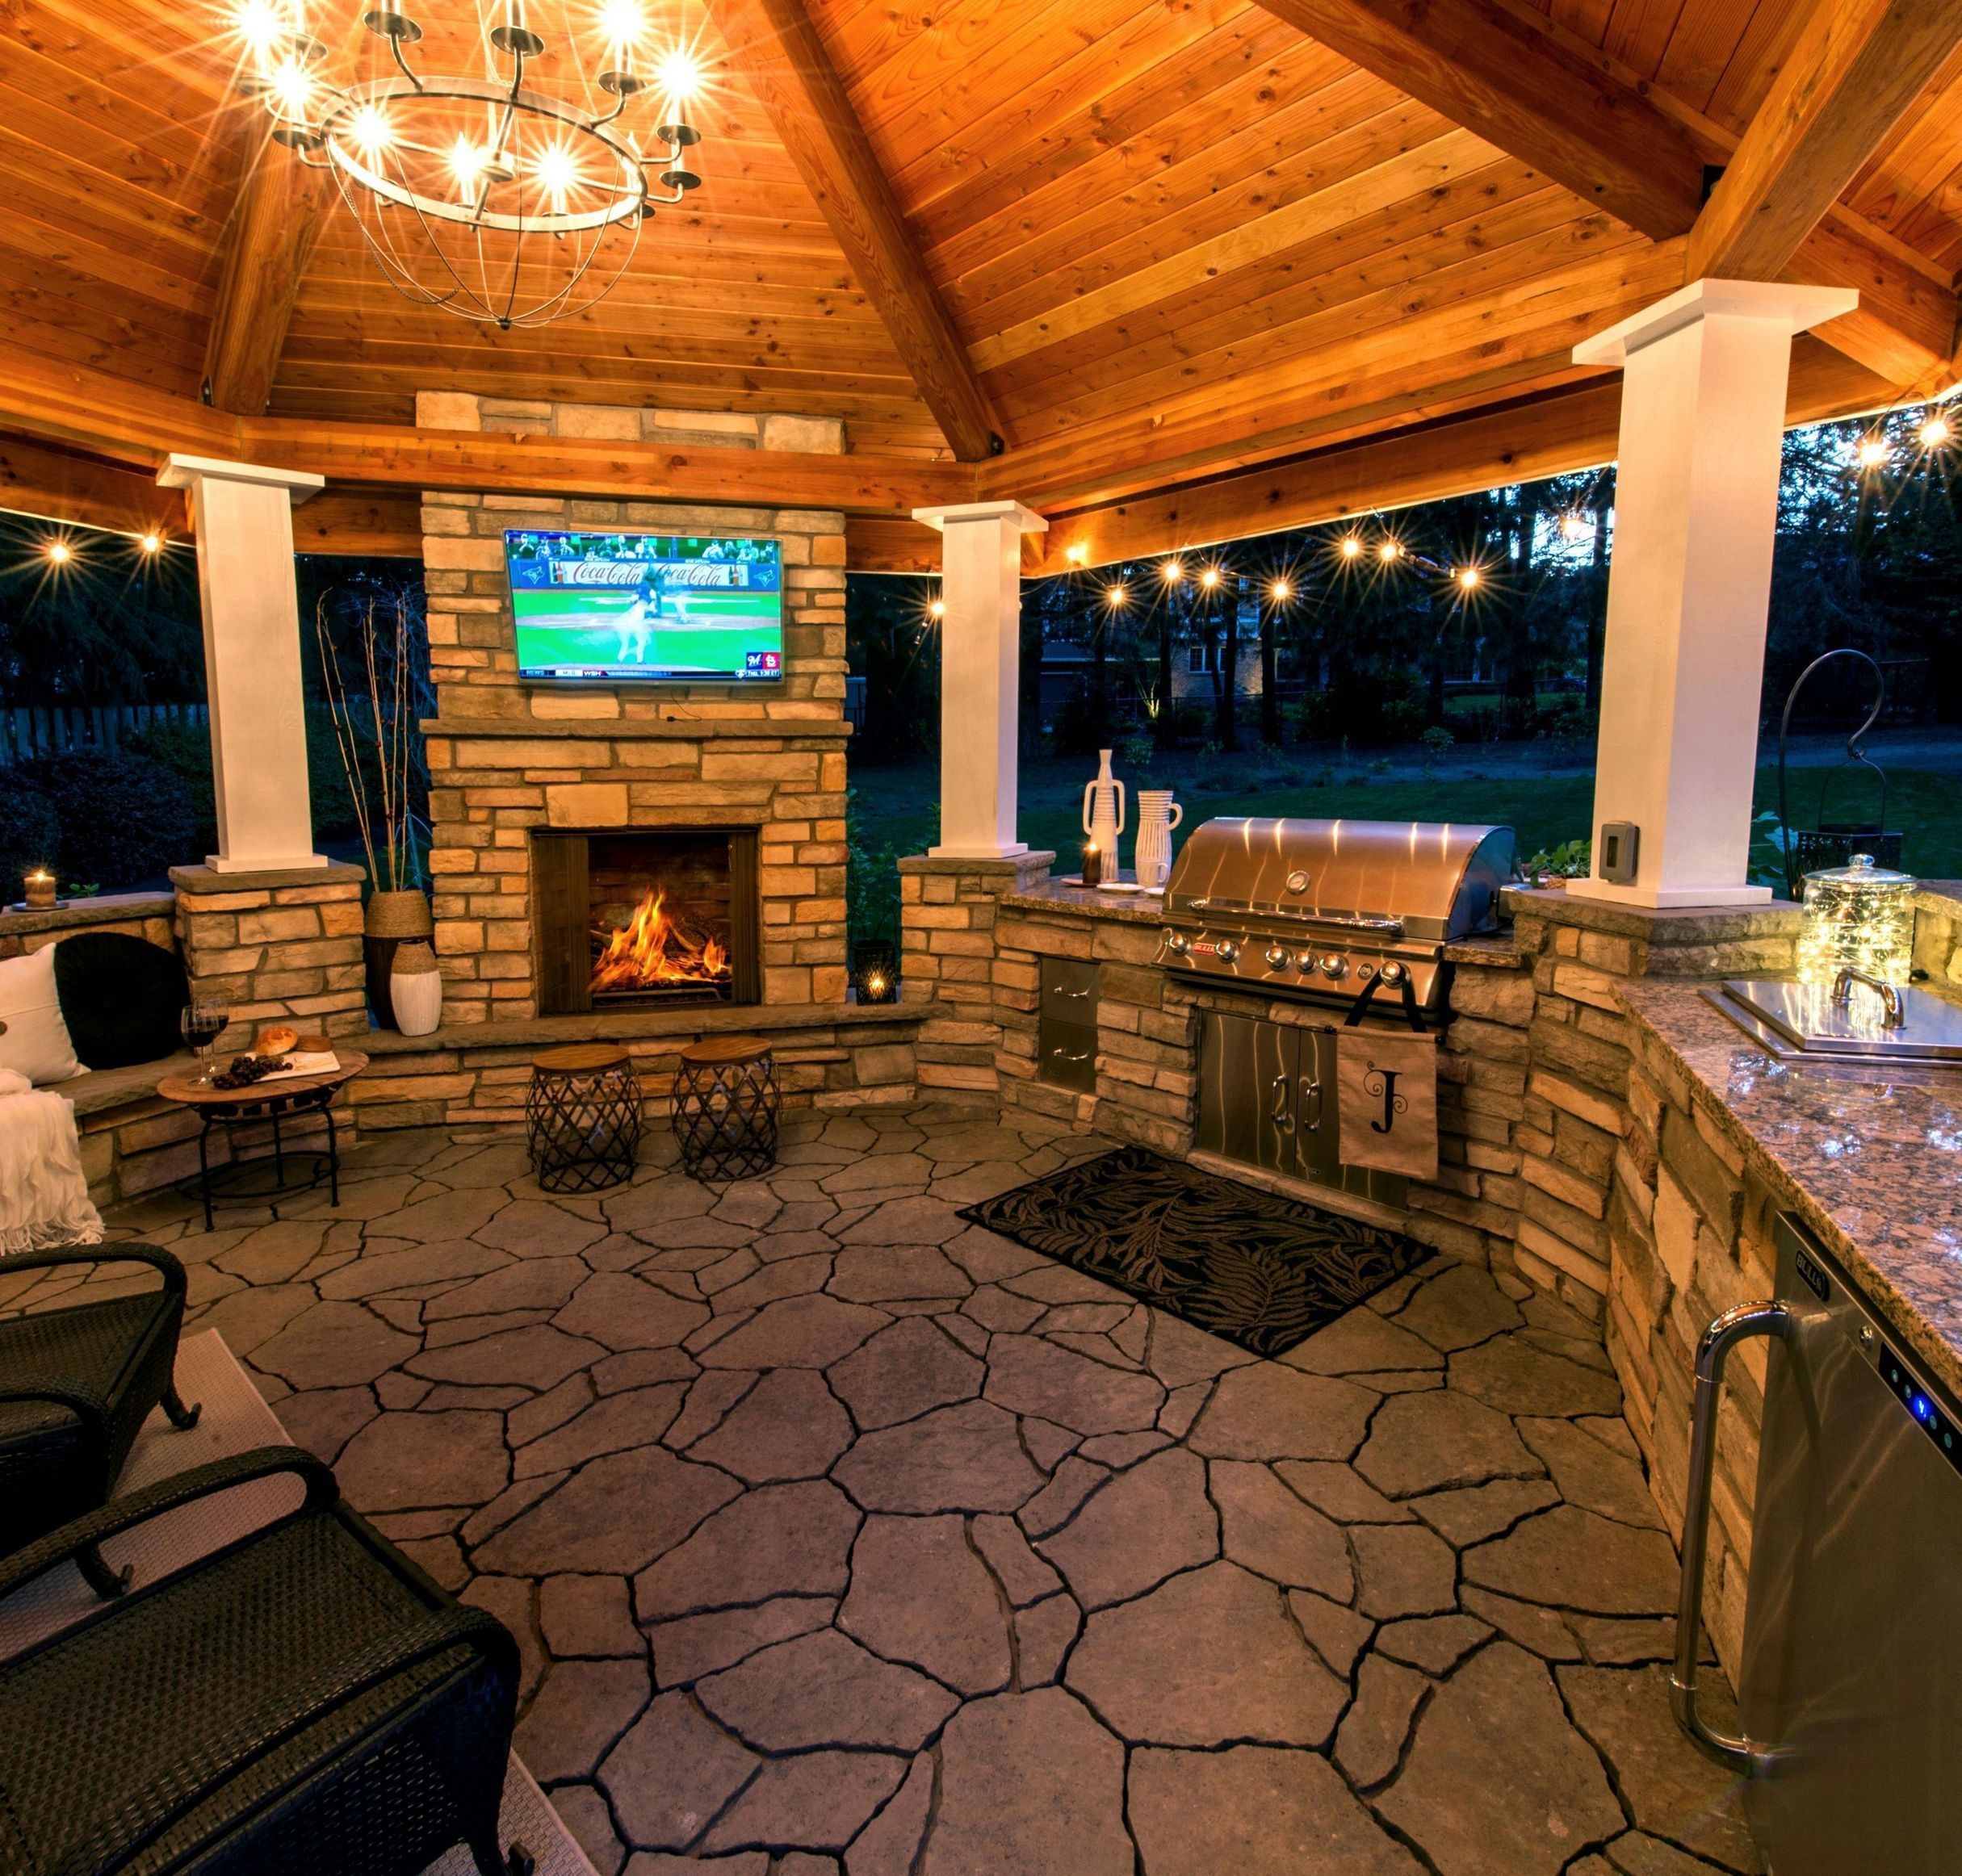 Patio Design Ideas is the most important thing in outdoor ... on Patio Ideas 2020 id=26883